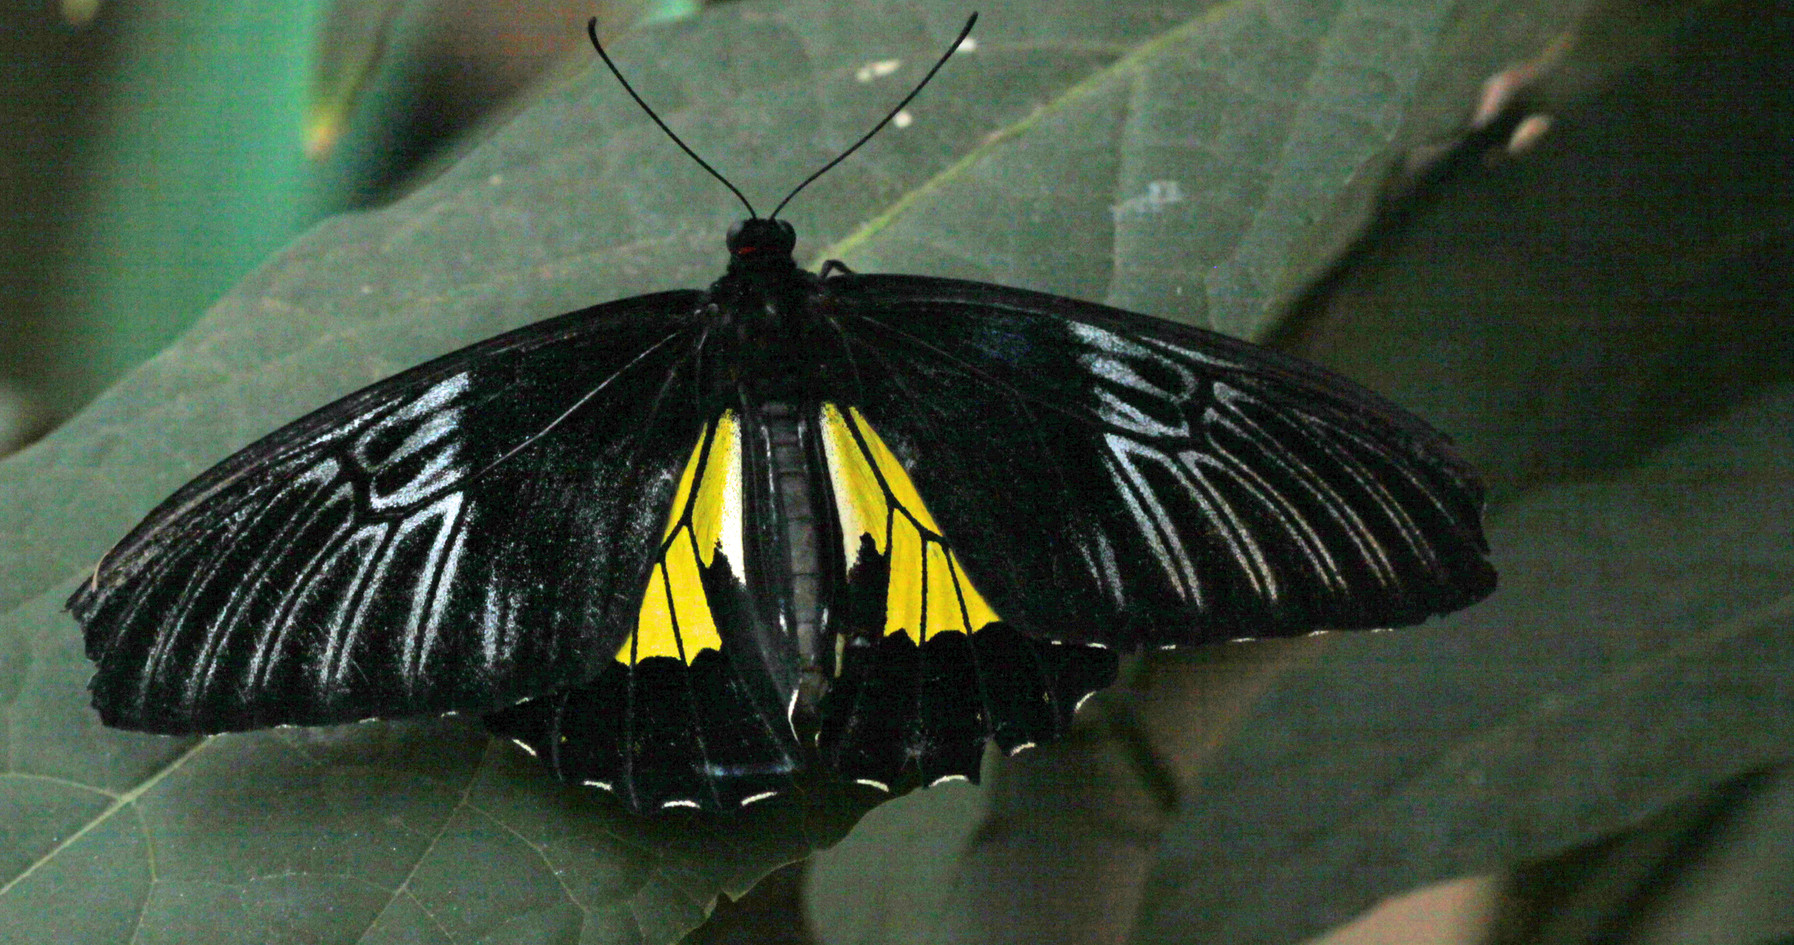 Another Golden Birdwing